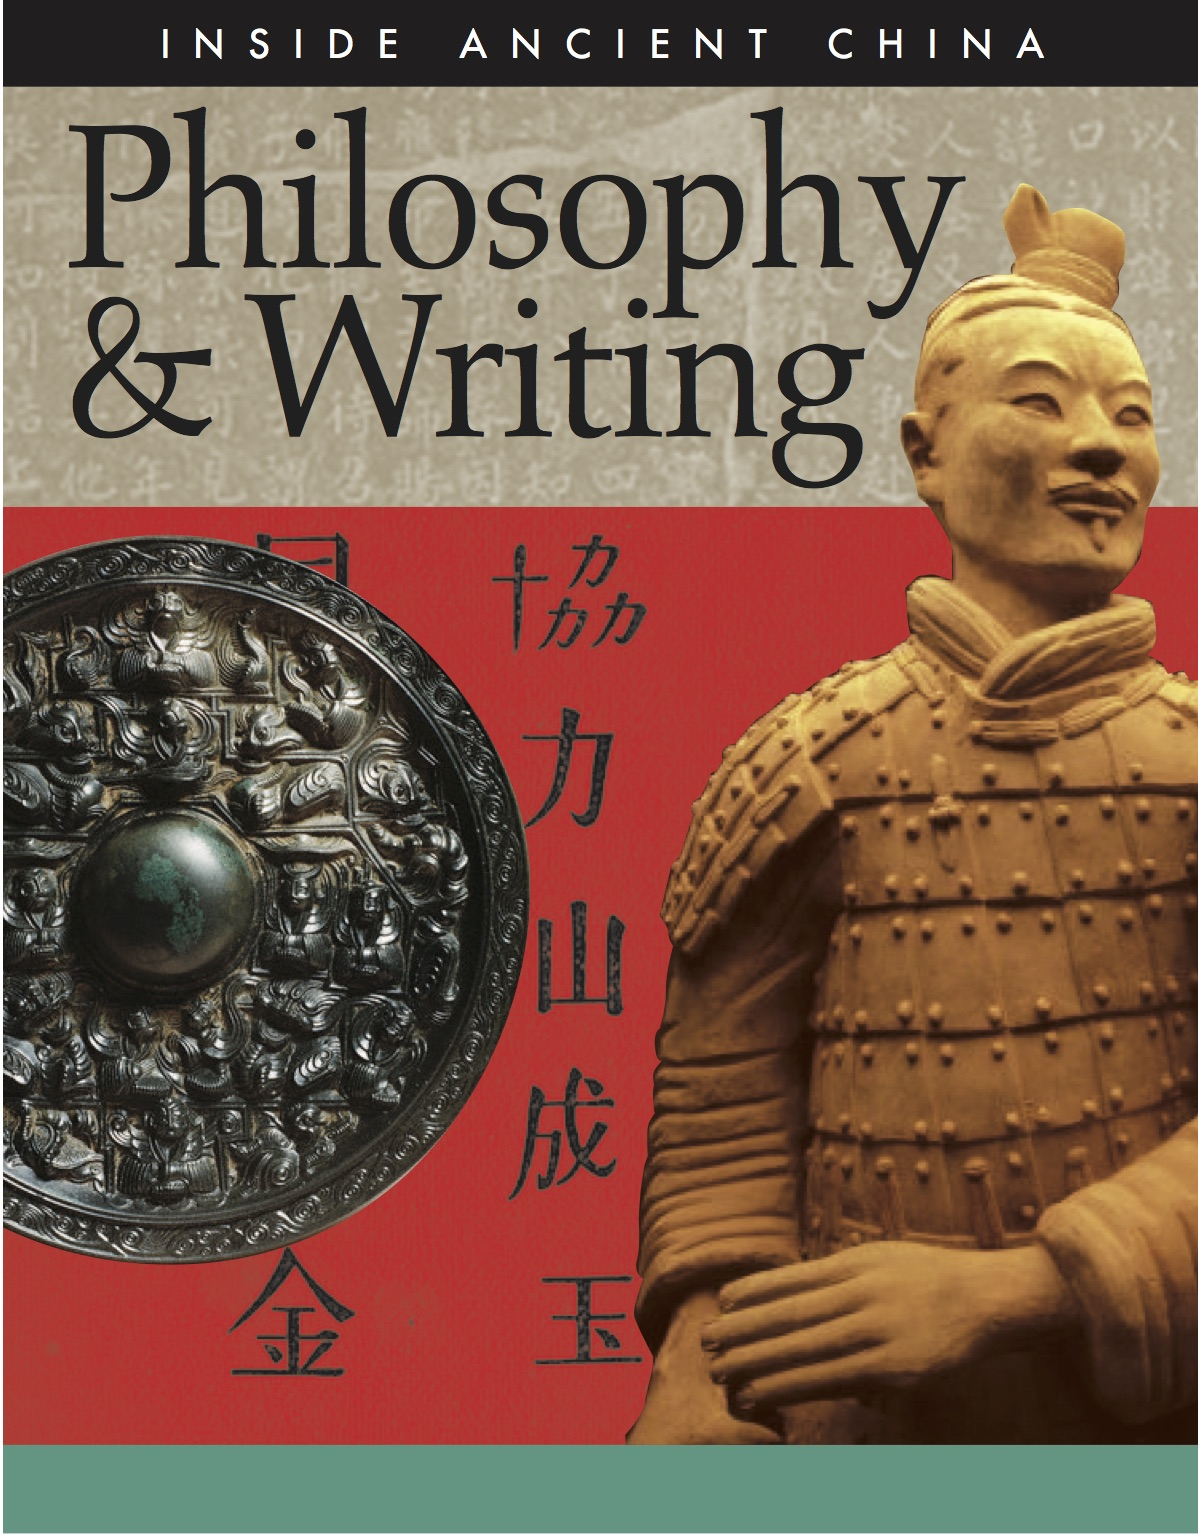 Inside Ancient China: Philosophy & Writing